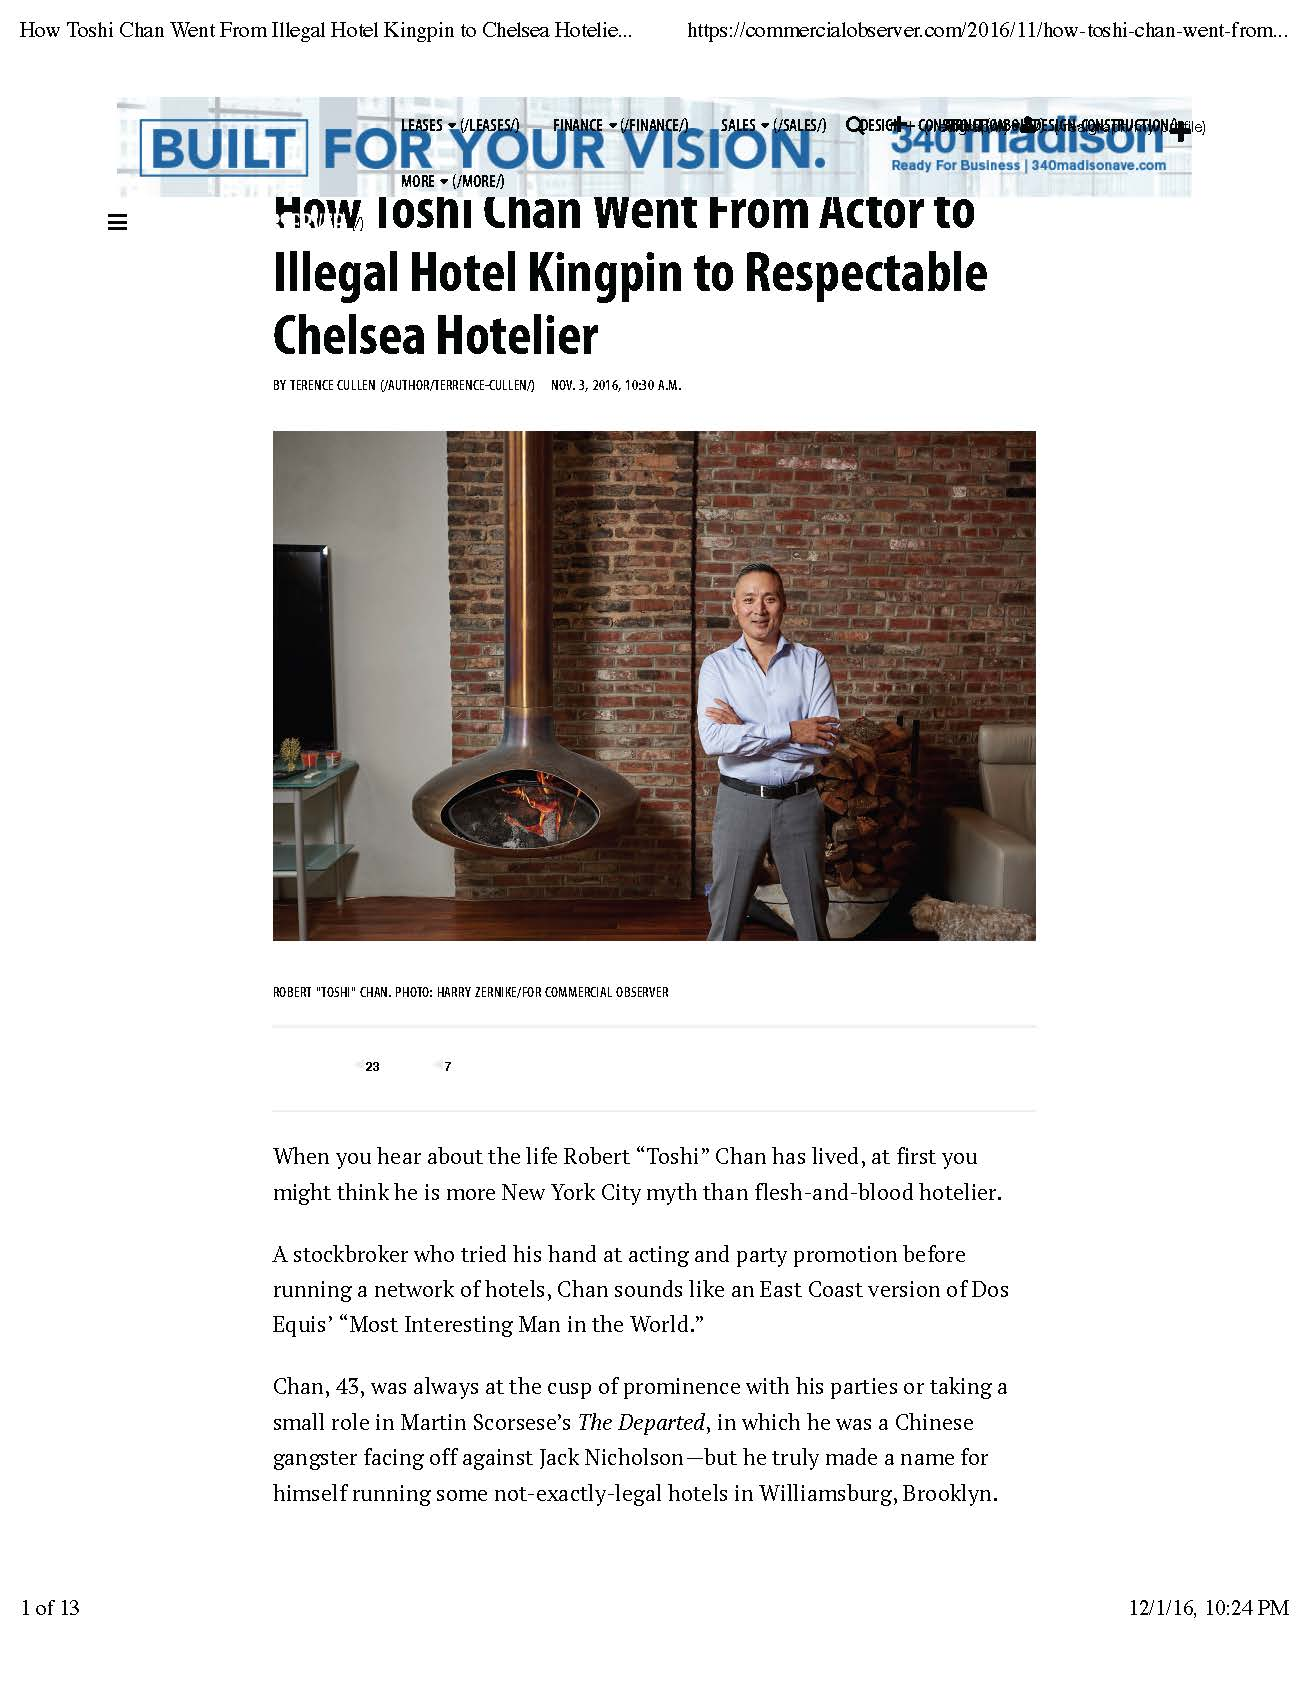 How Toshi Chan Went From Illegal Hotel Kingpin to Chelsea Hotelier _ Commercial Observer_Page_01.jpg